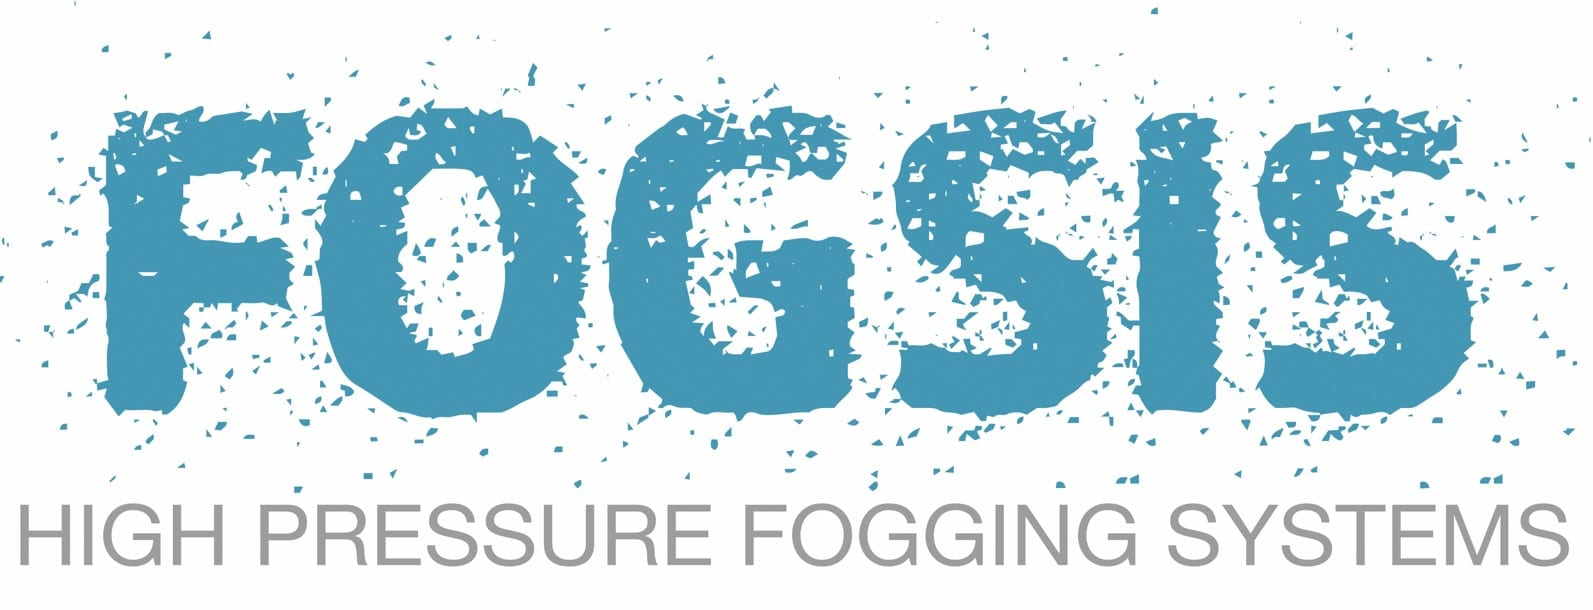 Fogsis High Pressure Fogging Systems